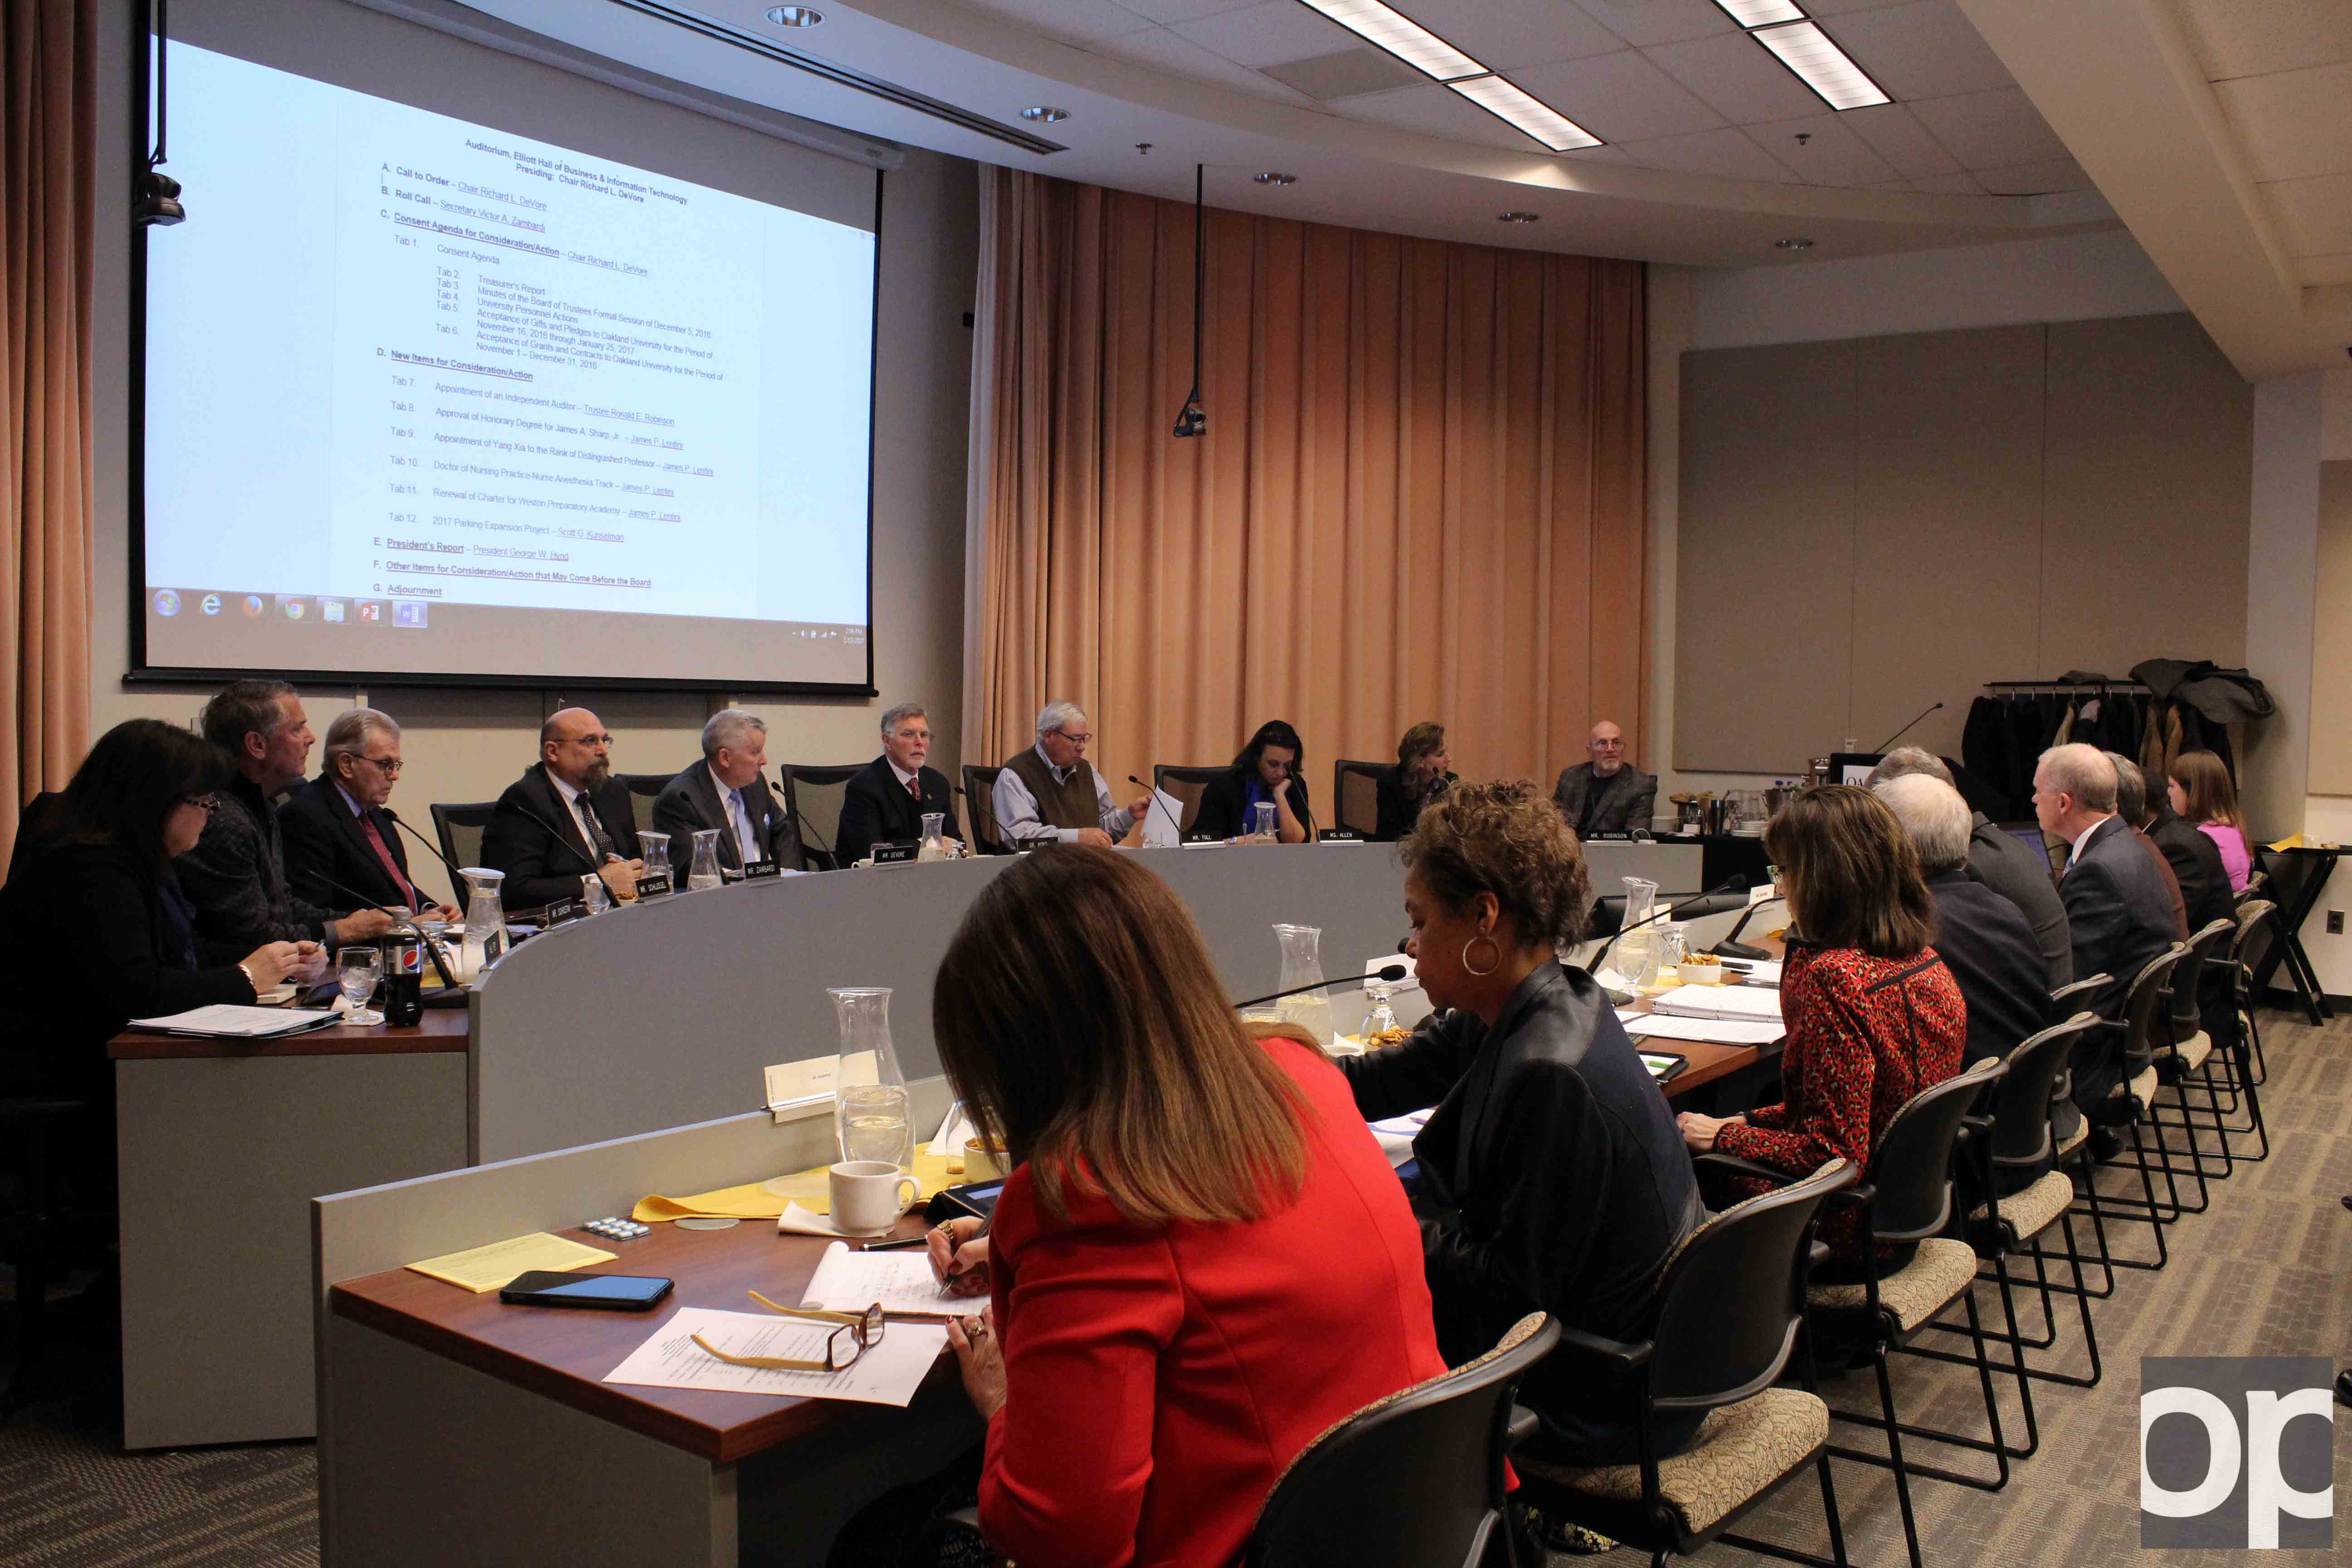 The Board of Trustees approved the parking proposal at their Feb. 13 meeting.